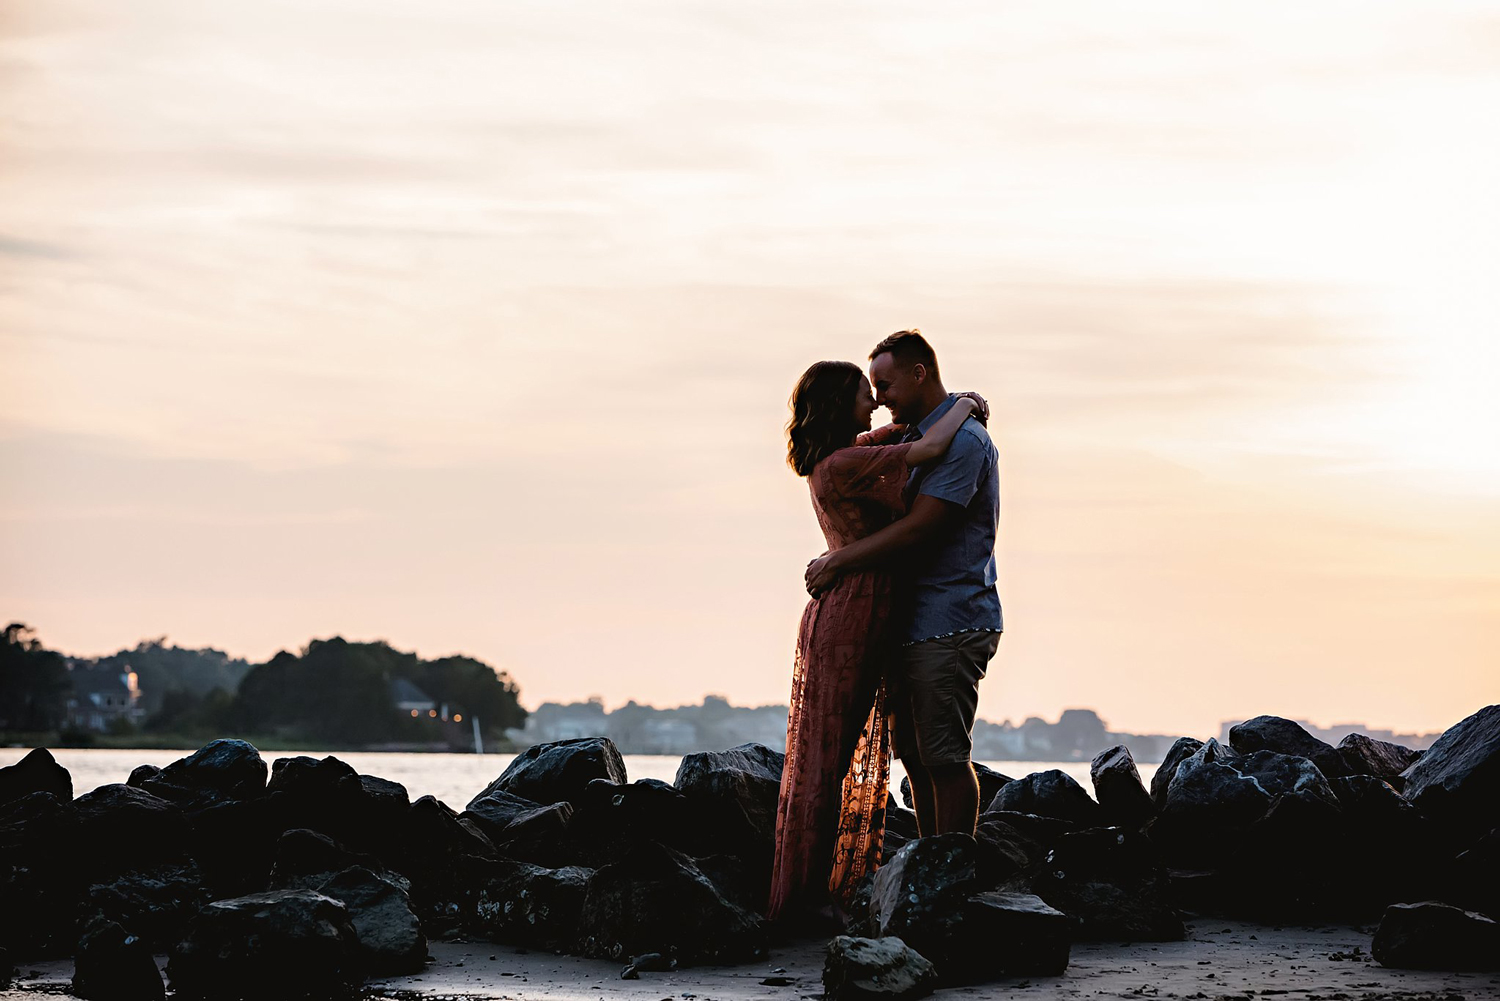 virginia-beach-engagement-photographer-melissa-bliss-photography-sunset-engagemnet-pictures-at-the-park.jpg